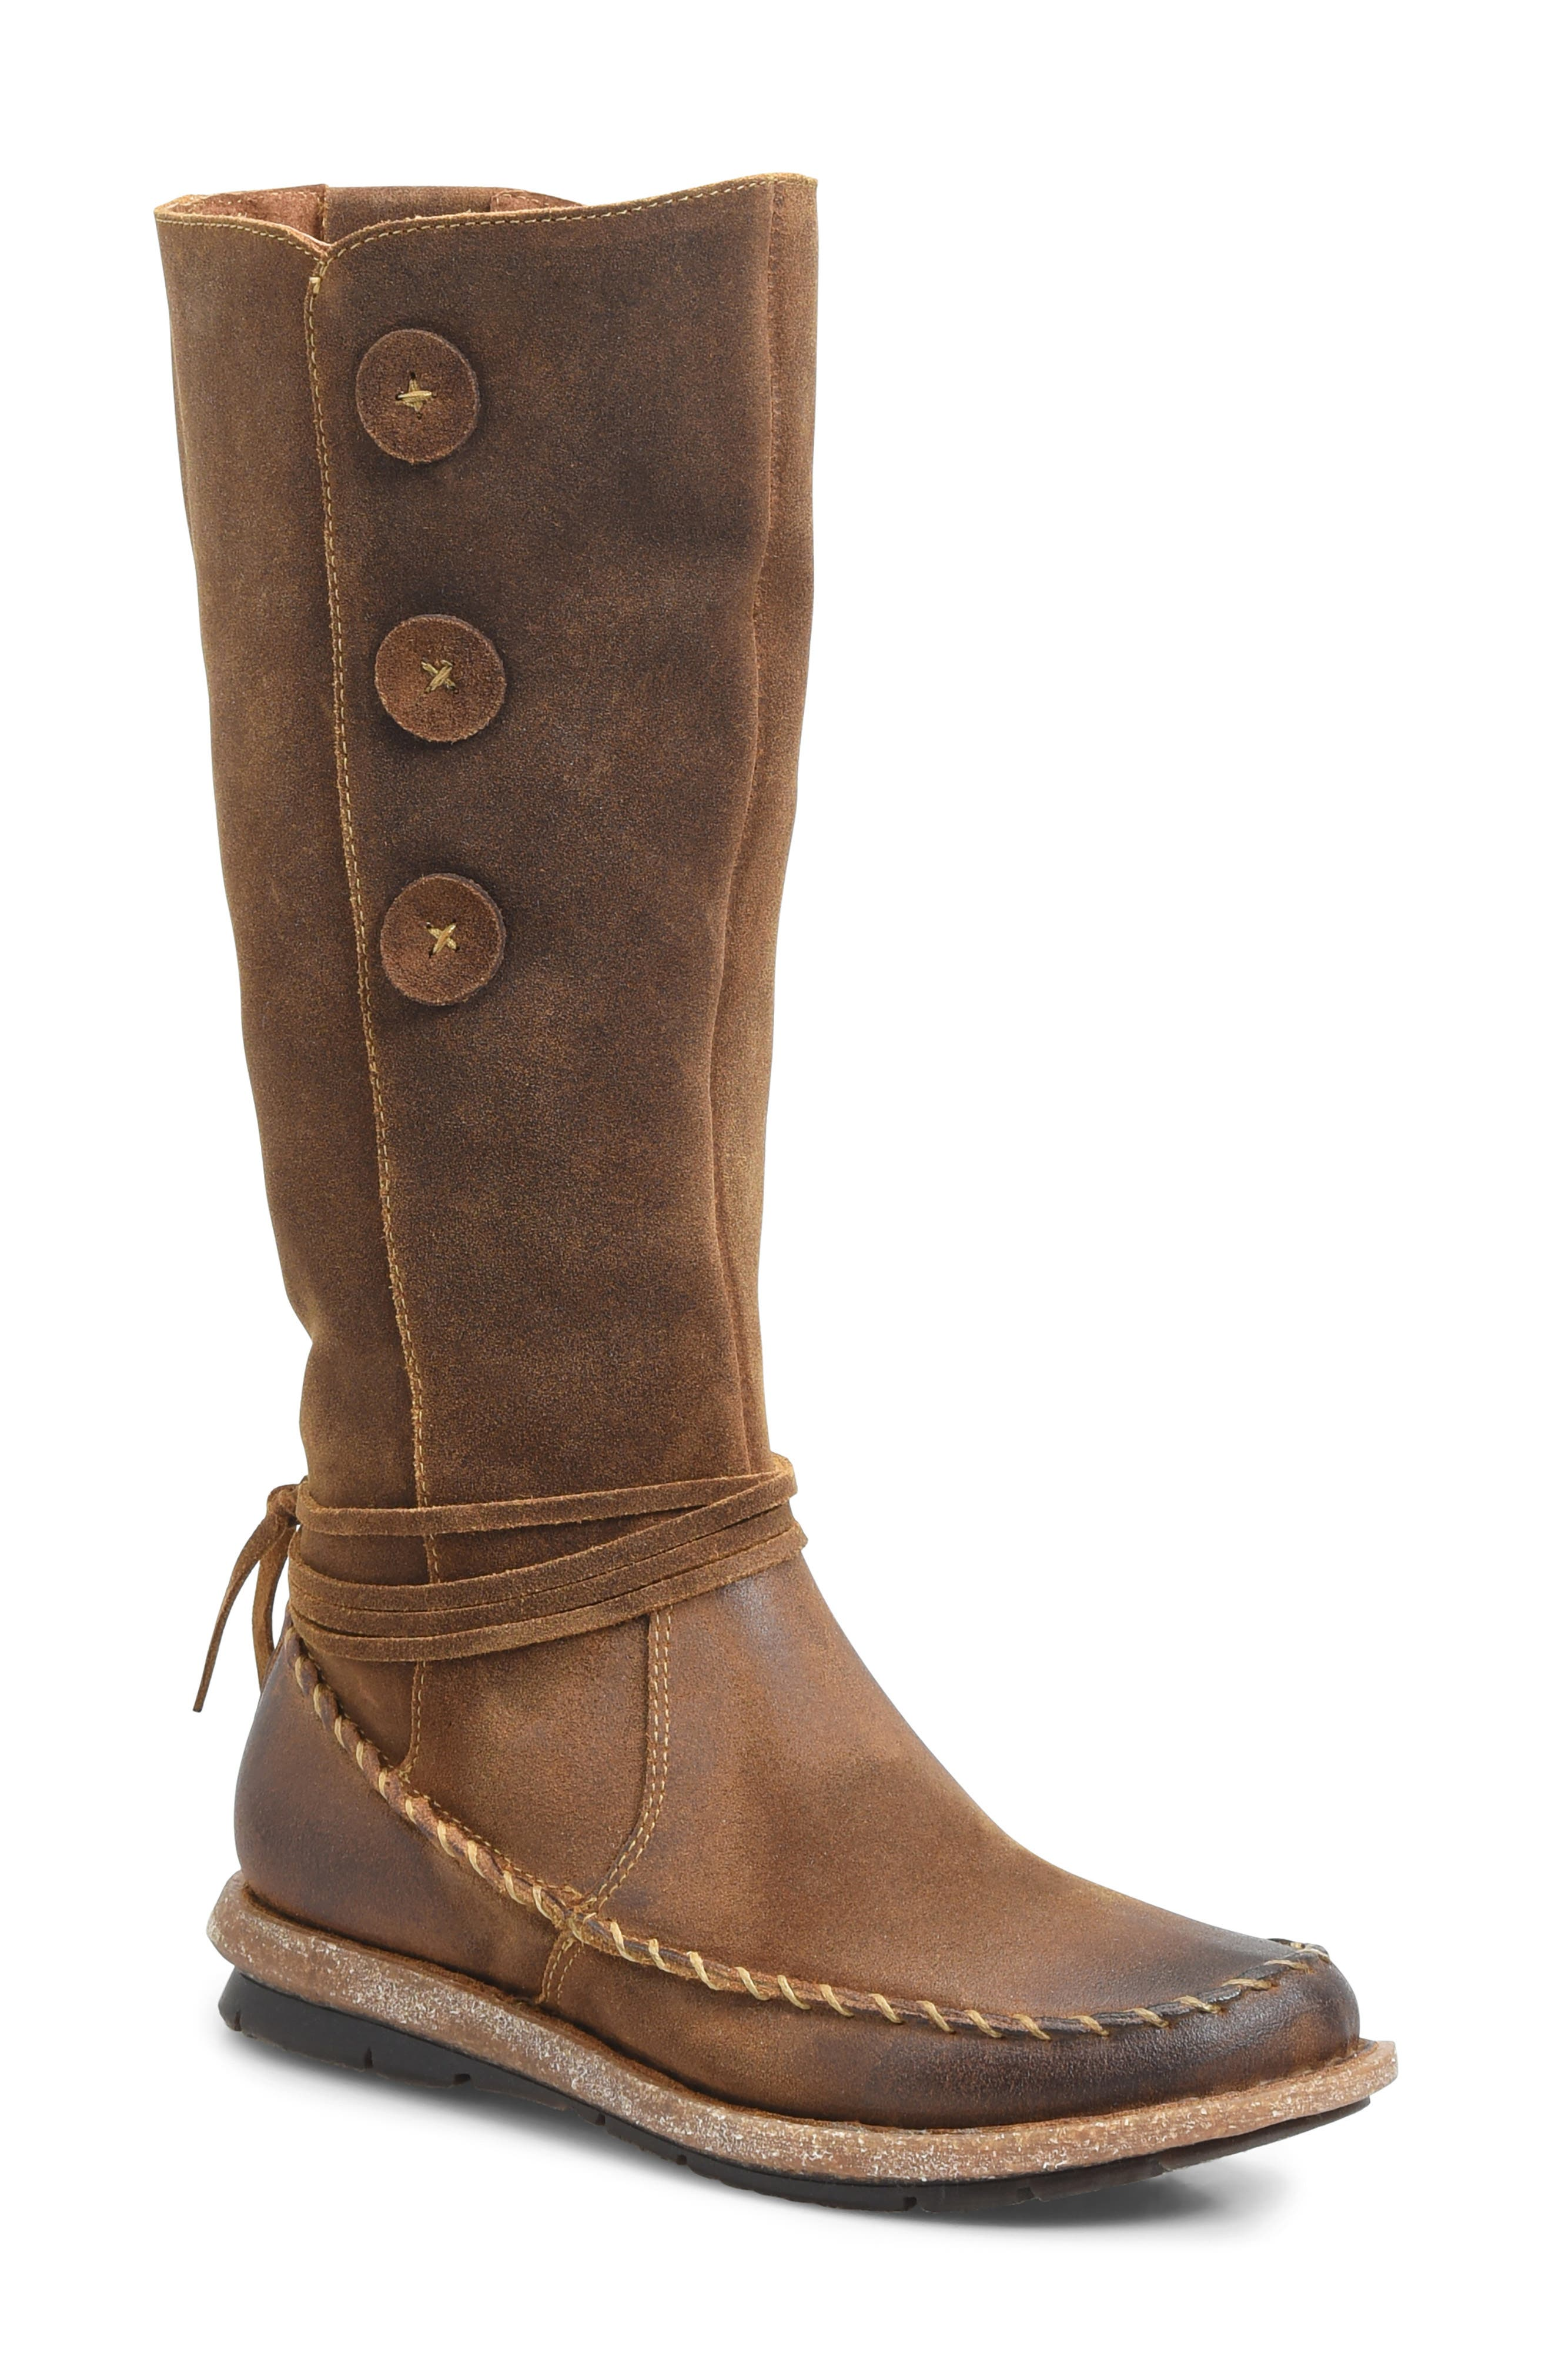 BØRN, Torrey Boot, Main thumbnail 1, color, RUST DISTRESSED LEATHER